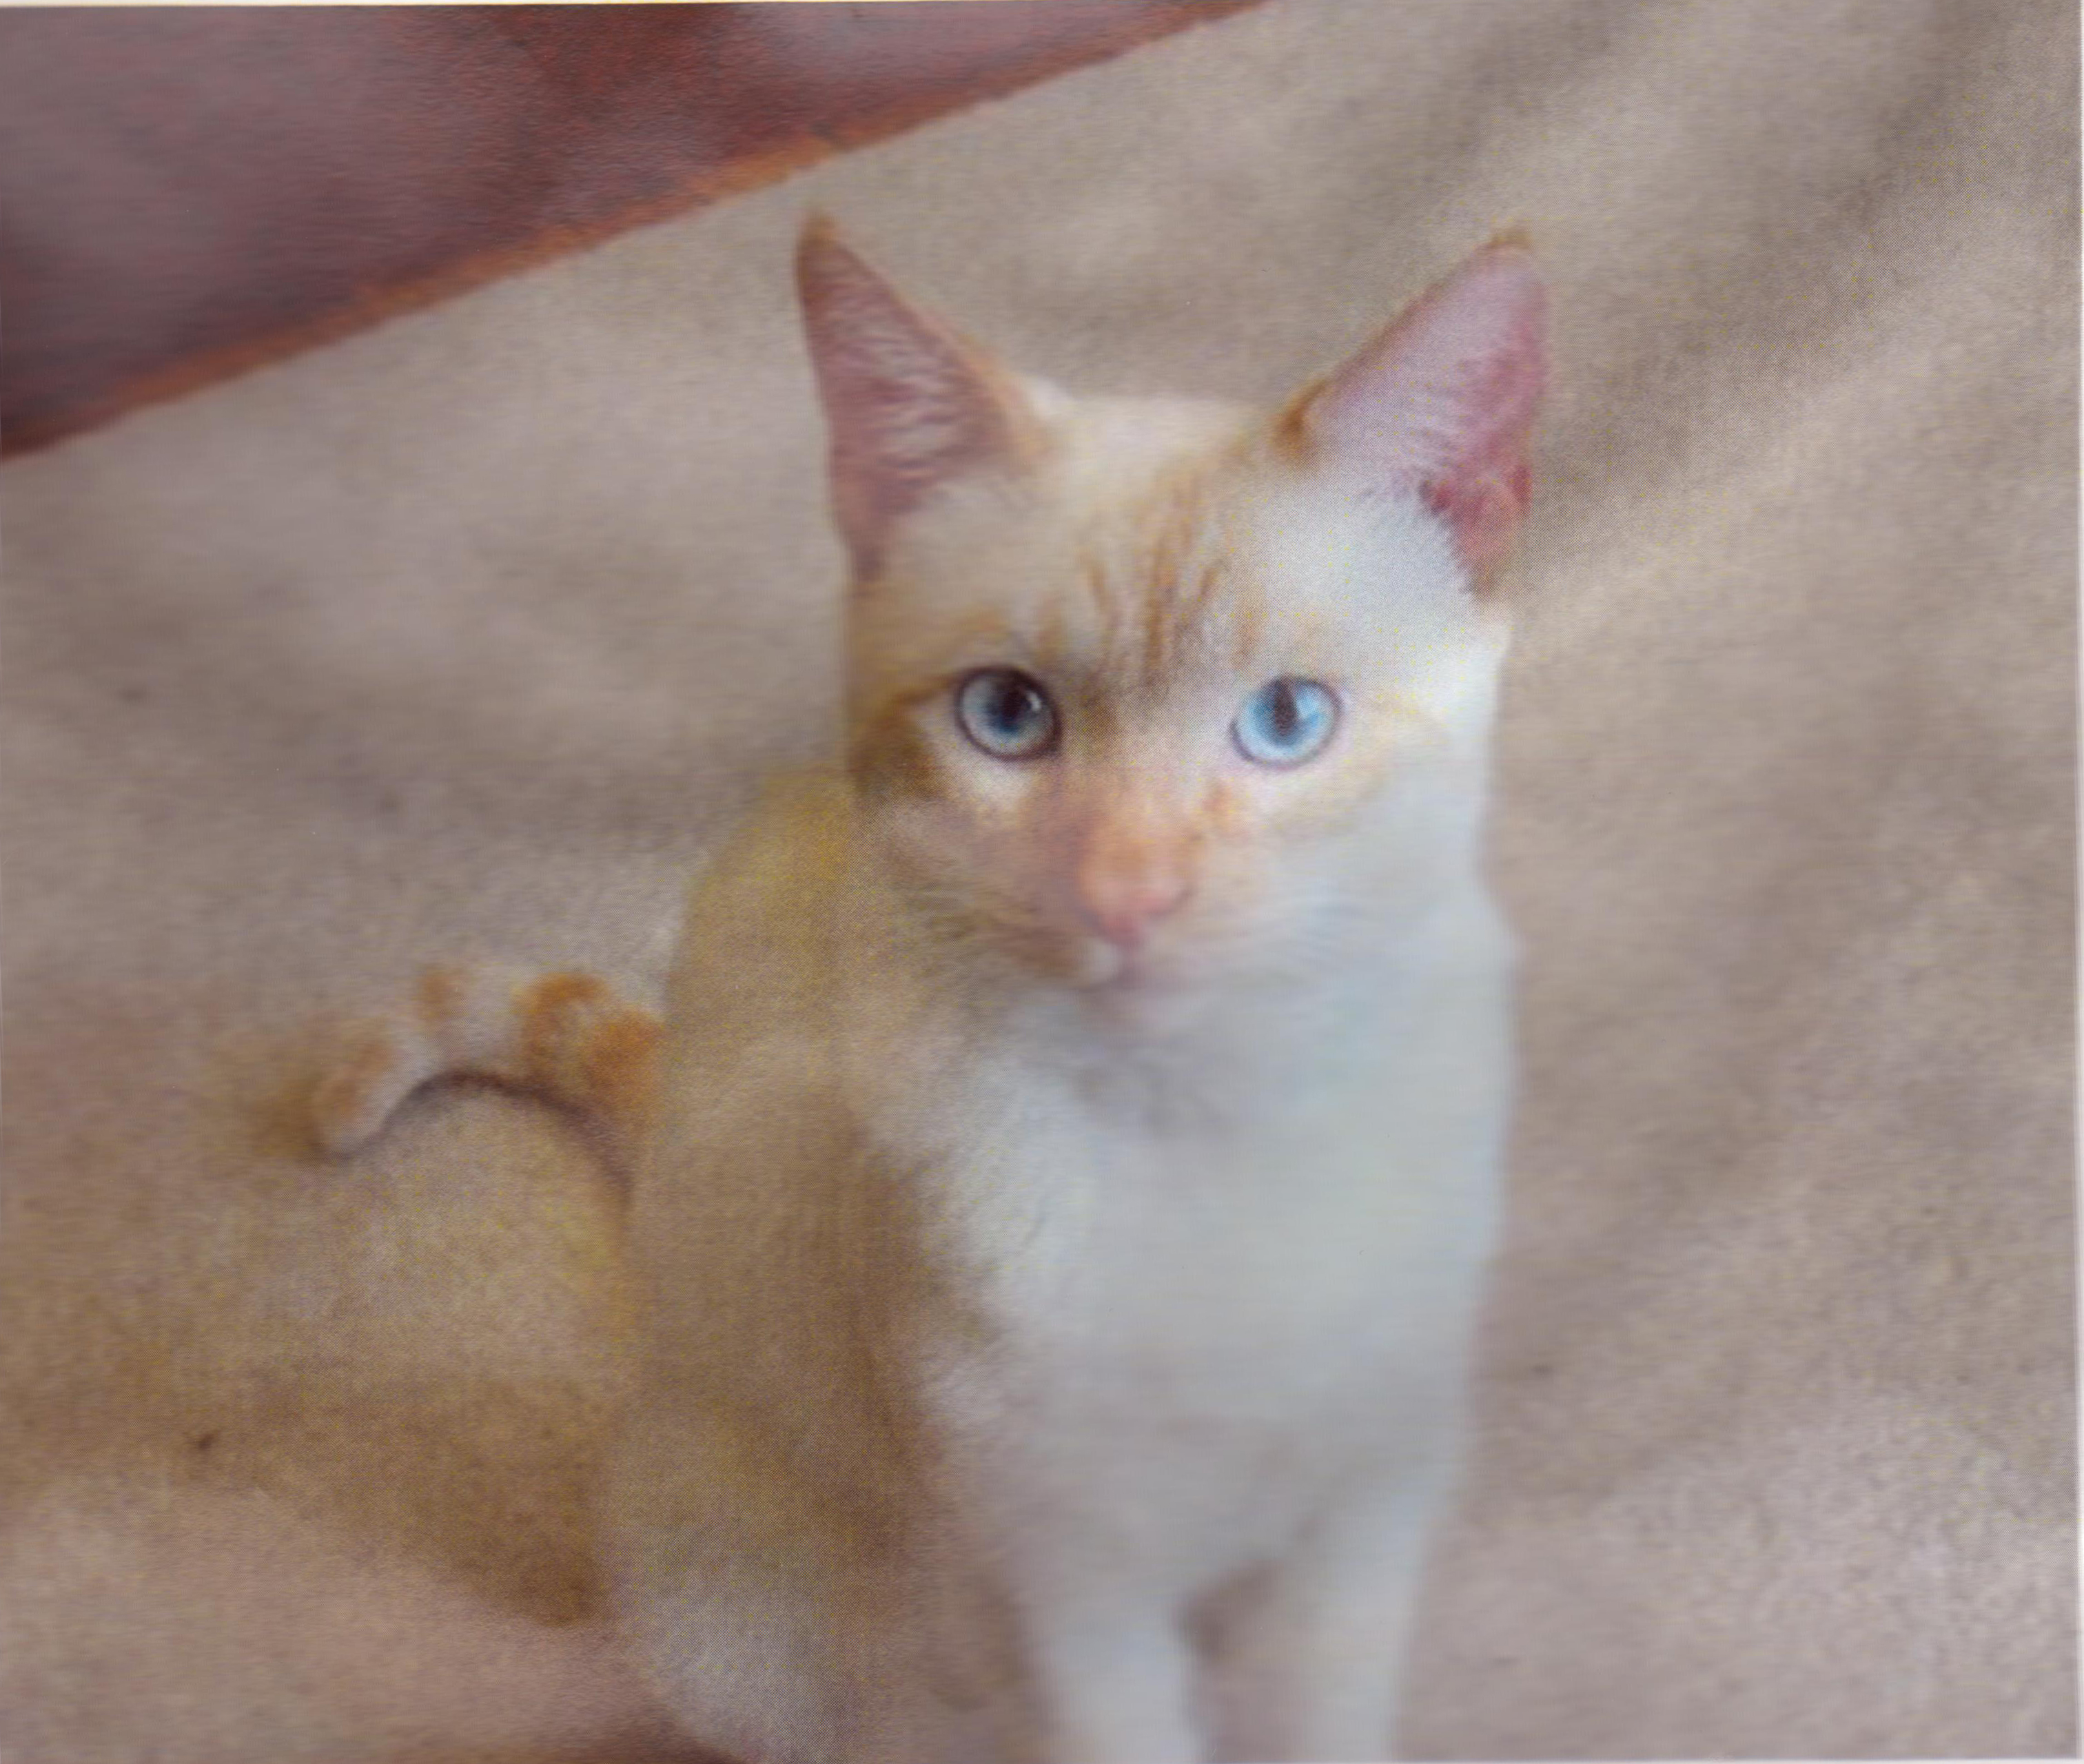 Lost White Cat Near Lakeport Road Offering $300 Reward! - Missing White Male Cat Name Bean